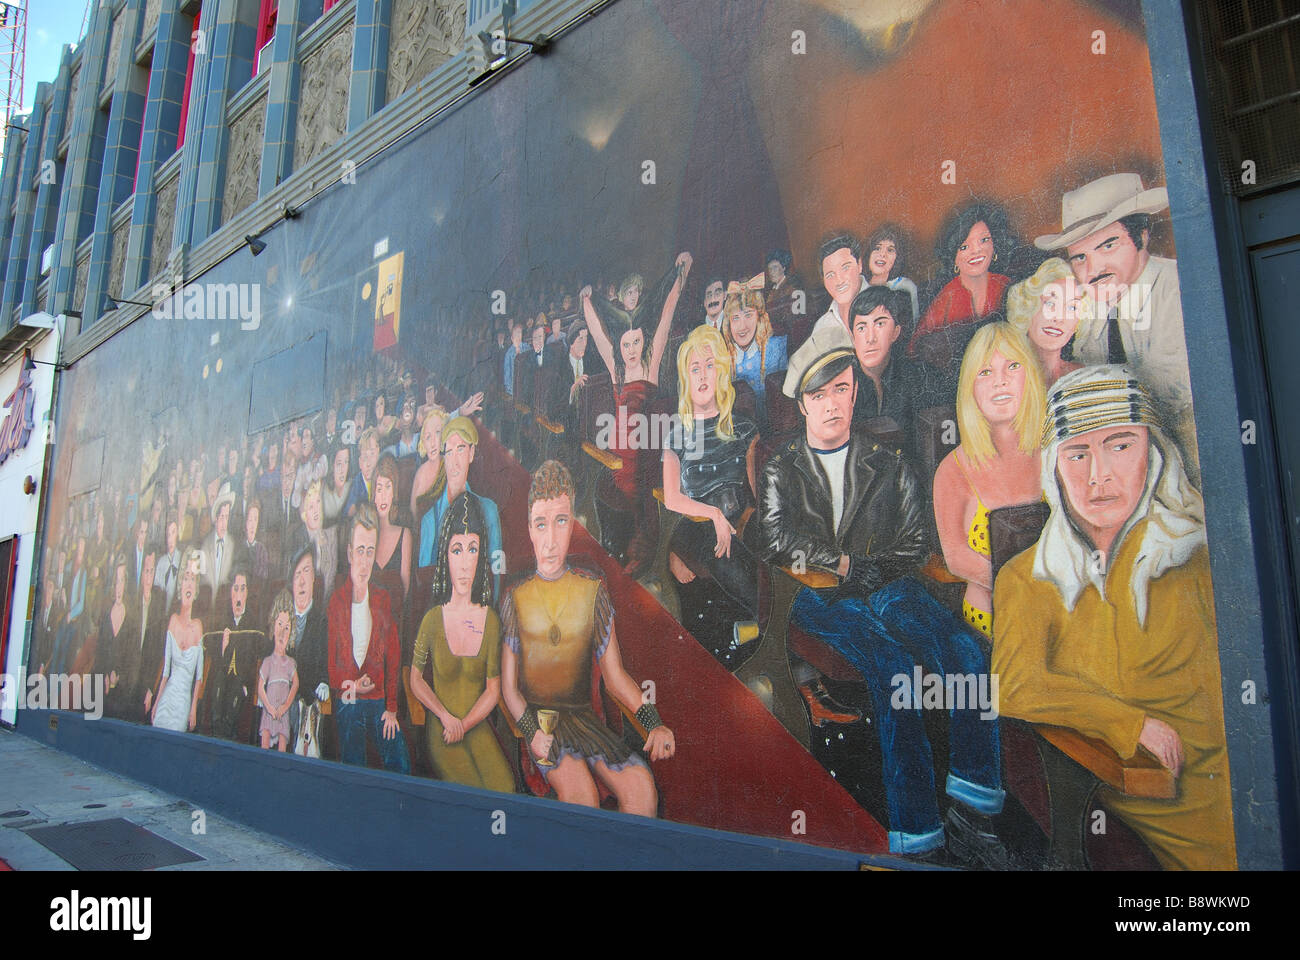 'You Are The Star' wall mural, Hollywood Boulevard & Wilcox Street, Hollywood, Los Angeles, California, - Stock Image